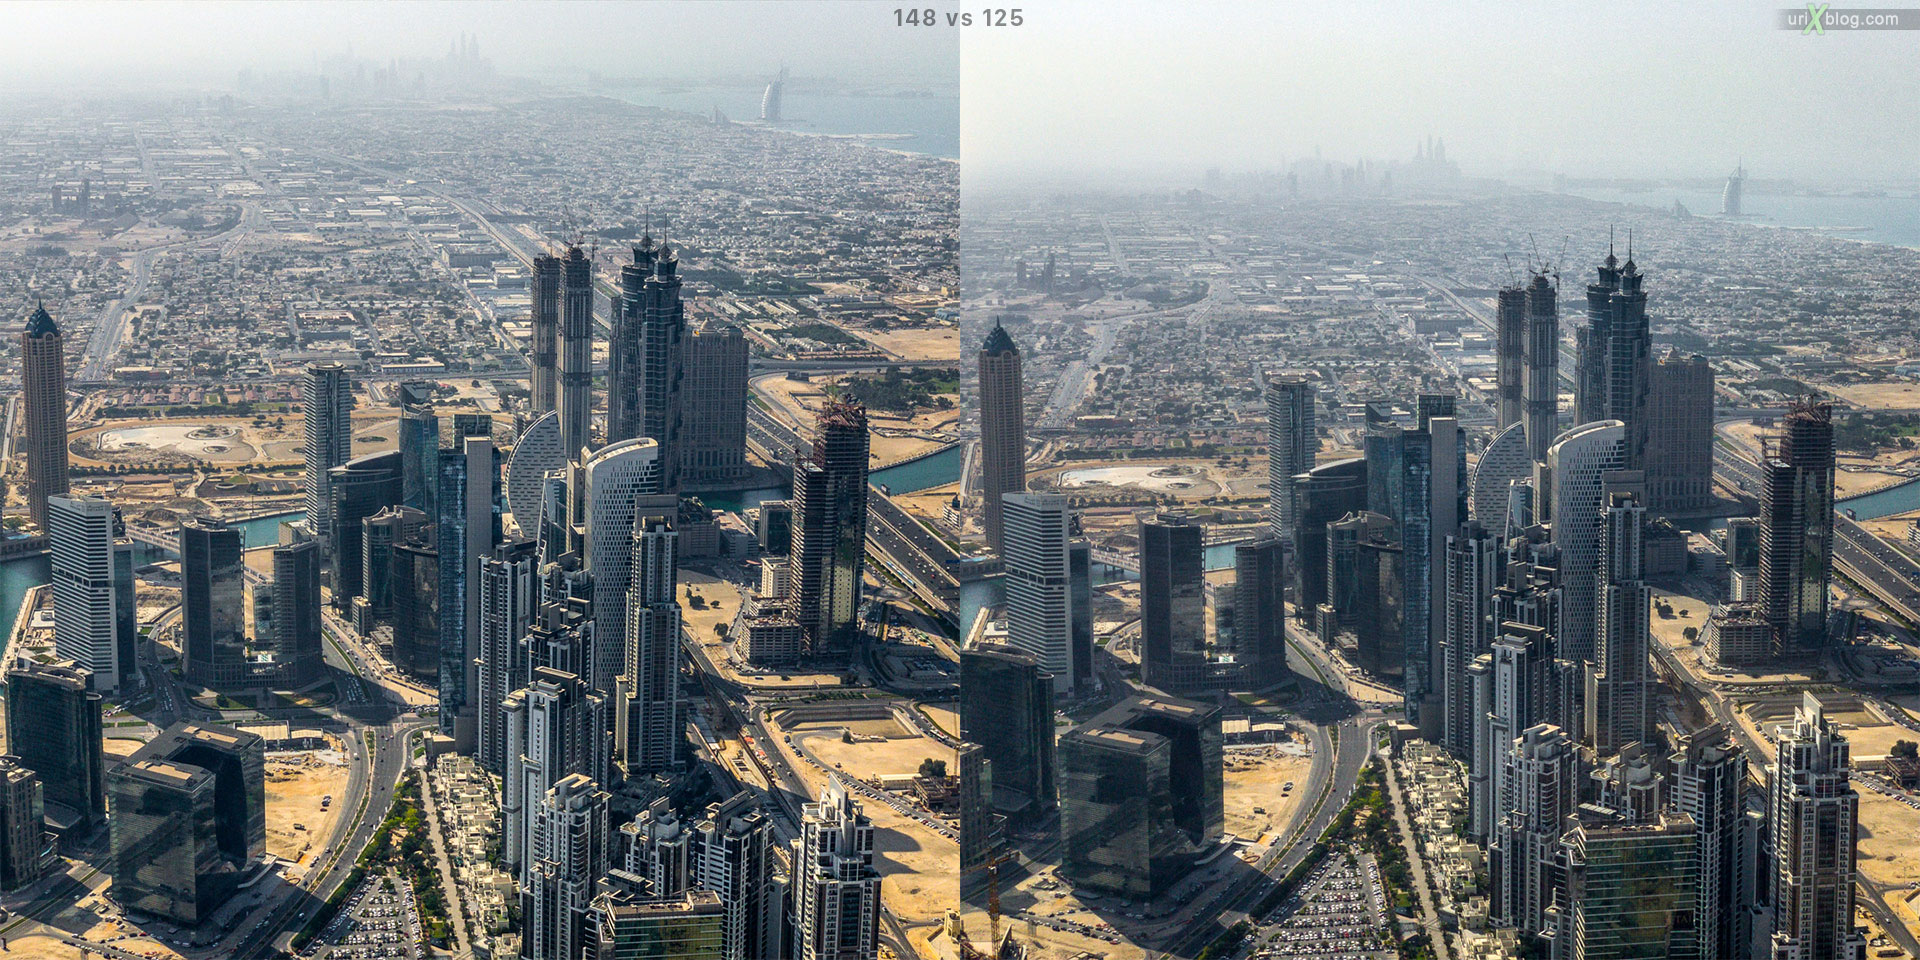 Dubai, Burj Khalifa, tower, UAE, comparison, horizon, panorama, 2017, 148, 124, 125, floors